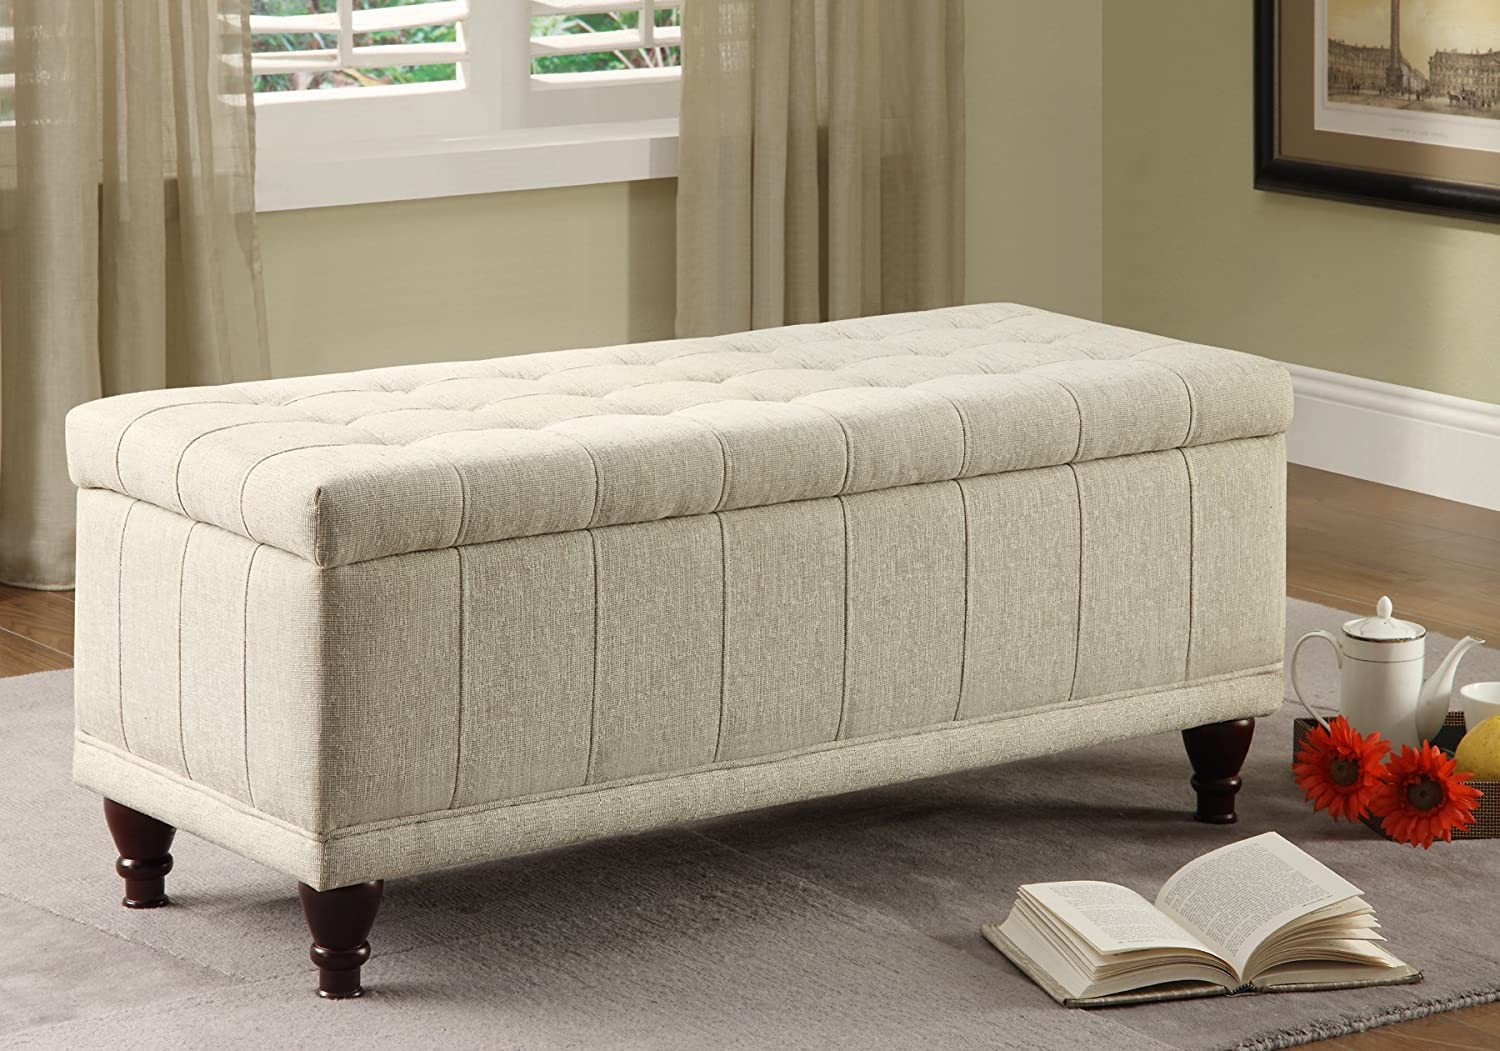 amazoncom homelegance nf lift top storage bench with tufted  - amazoncom homelegance nf lift top storage bench with tufted accentsbeige fabric kitchen  dining